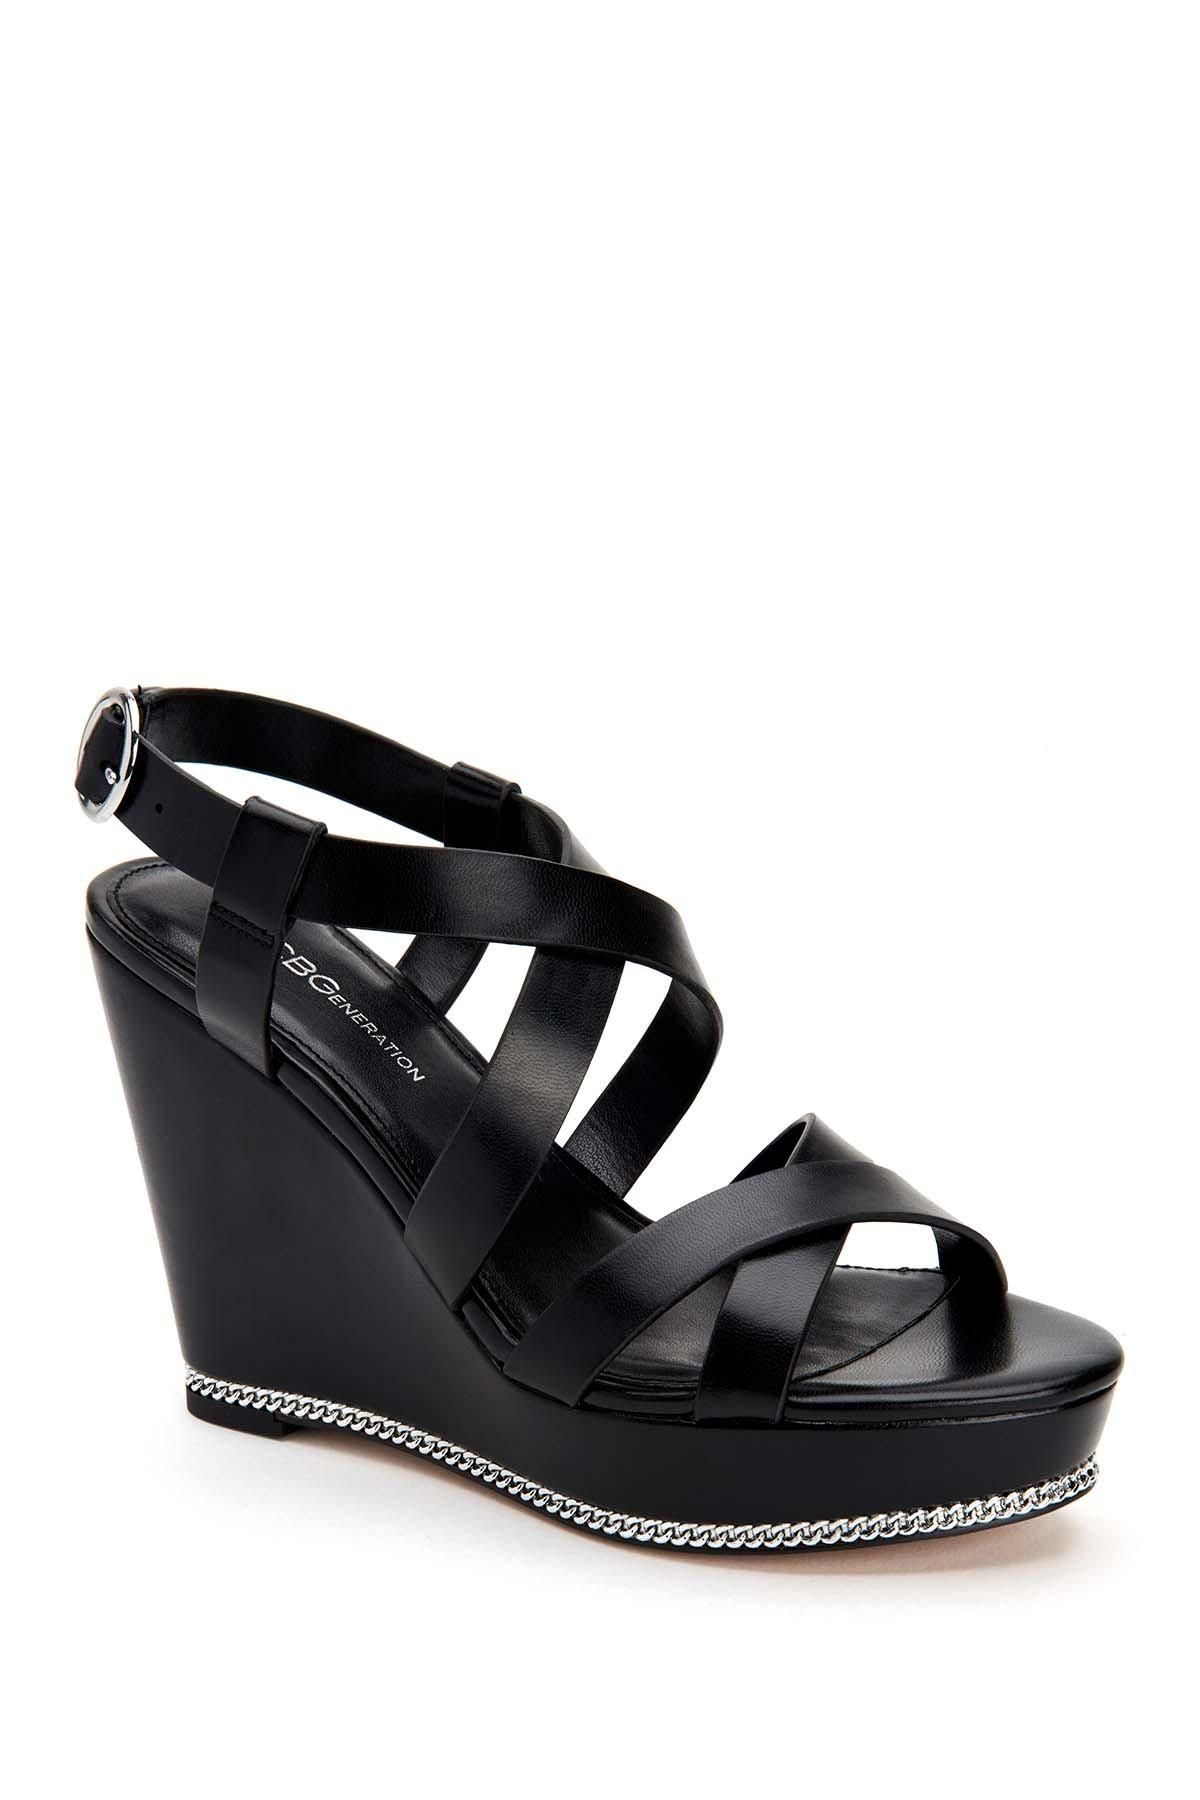 23f435a1d1 Lyst - BCBGeneration Janice Strappy Wedge Sandal in Black - Save 46%